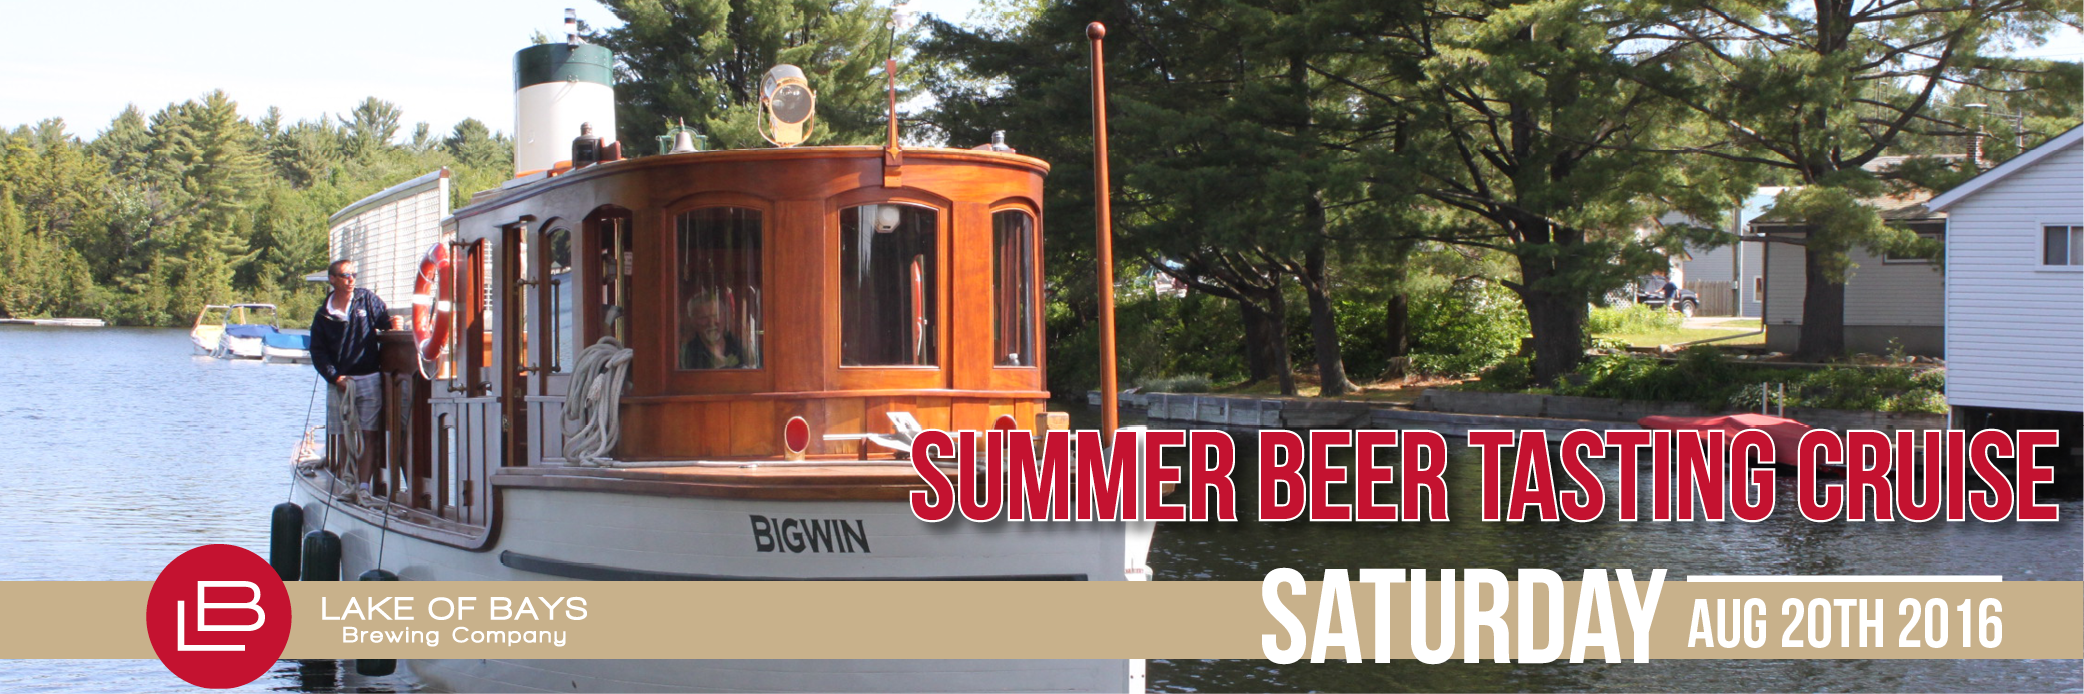 Summer Beer Tasting Cruise. Saturday, August 20th, 2016